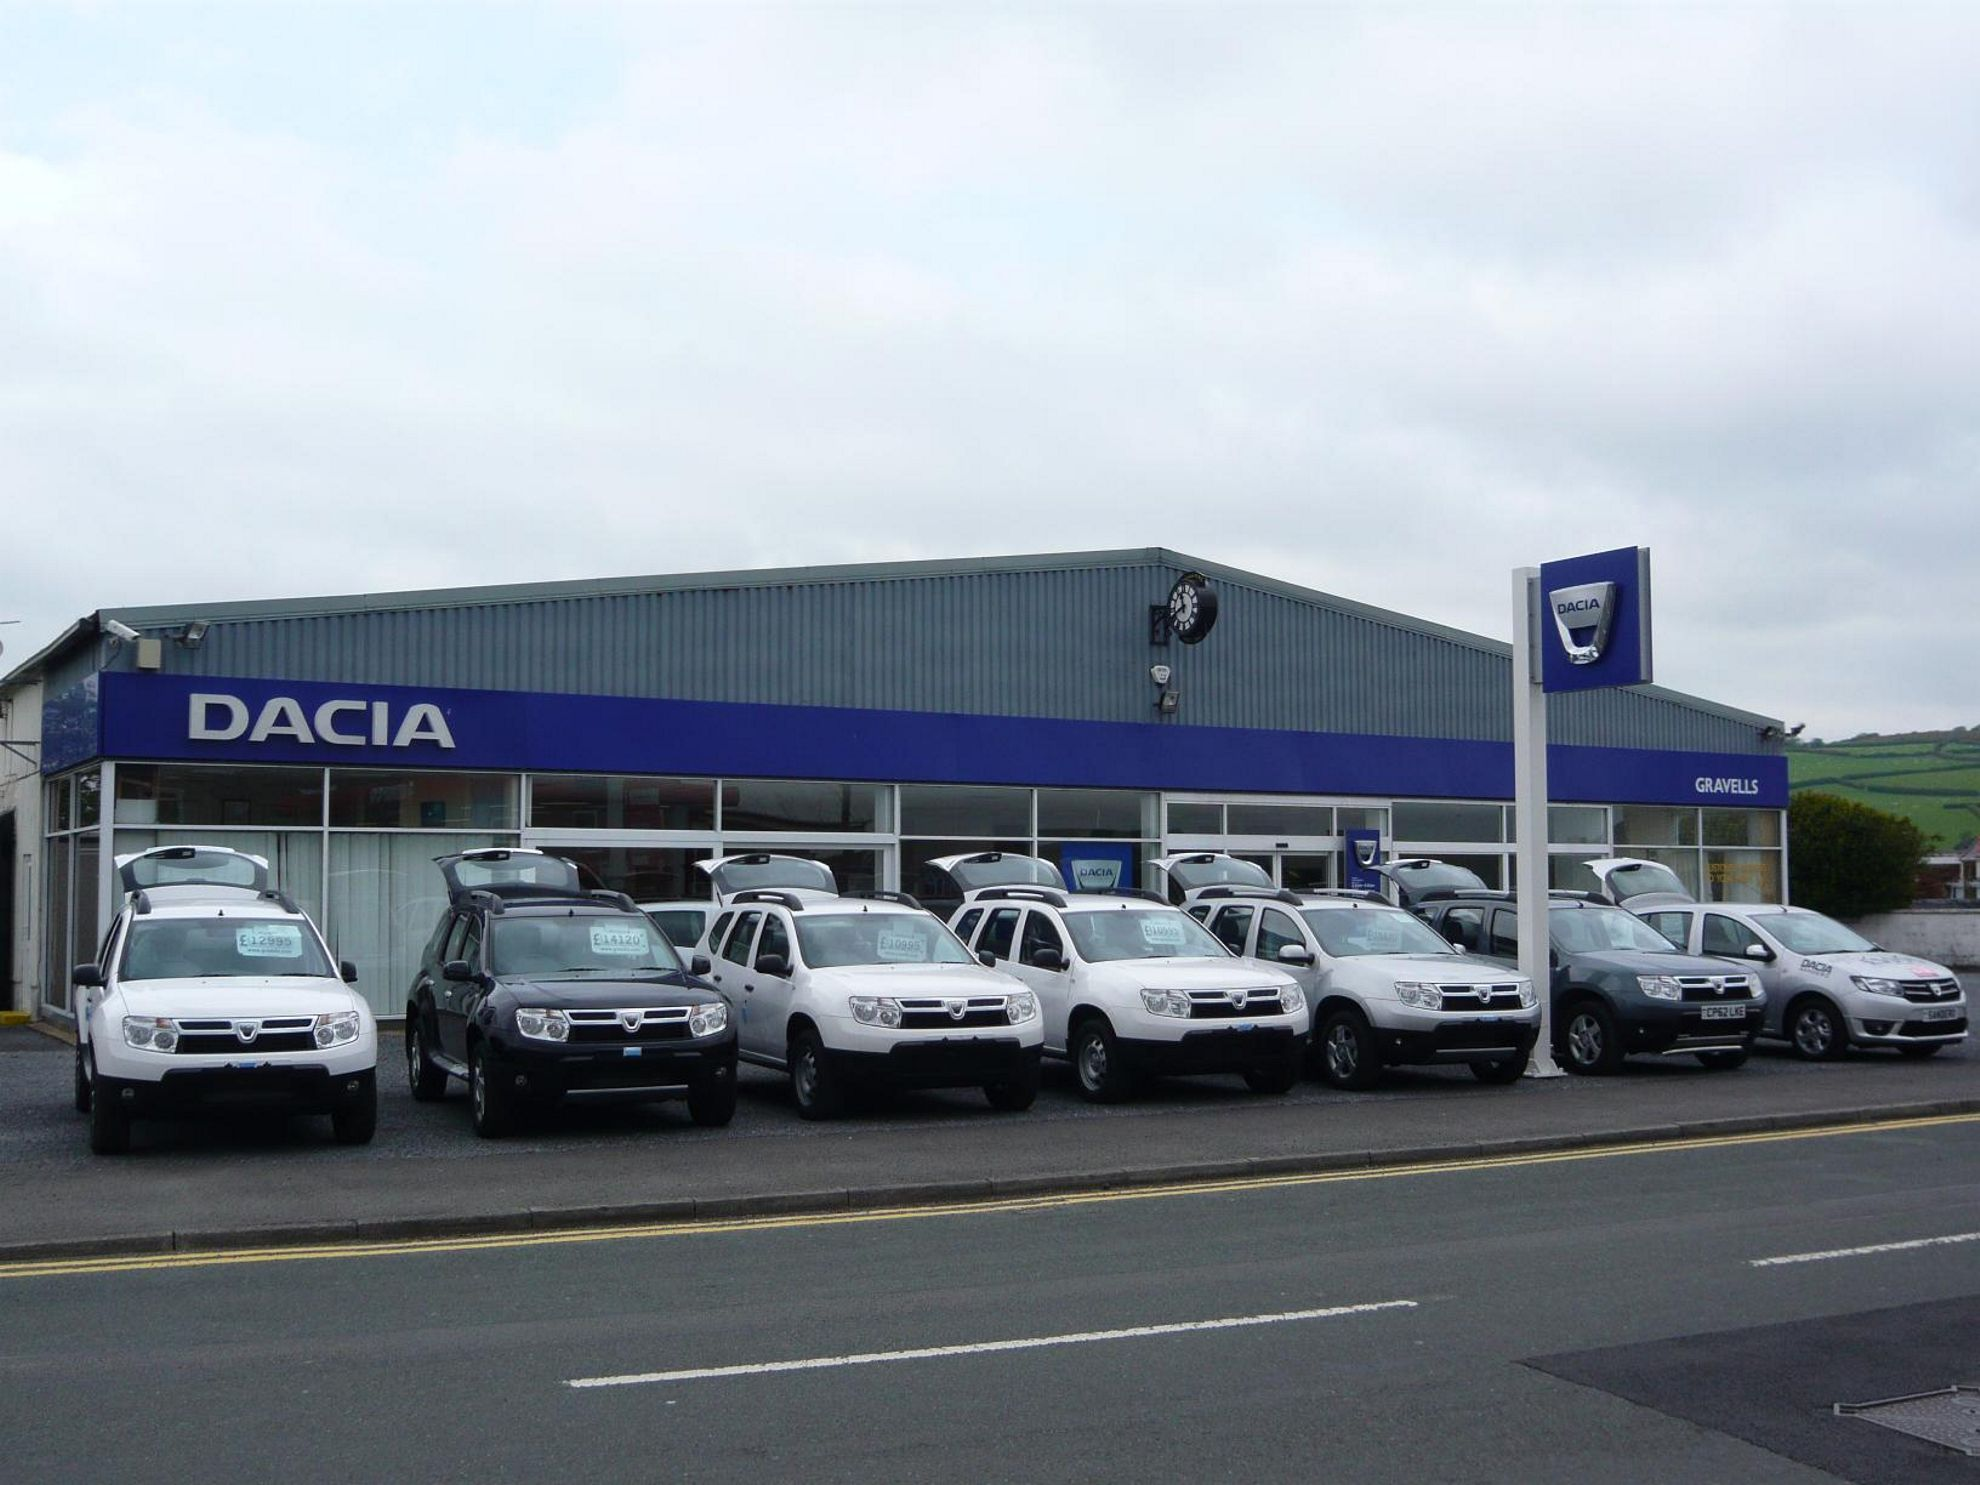 Dacia Dealership